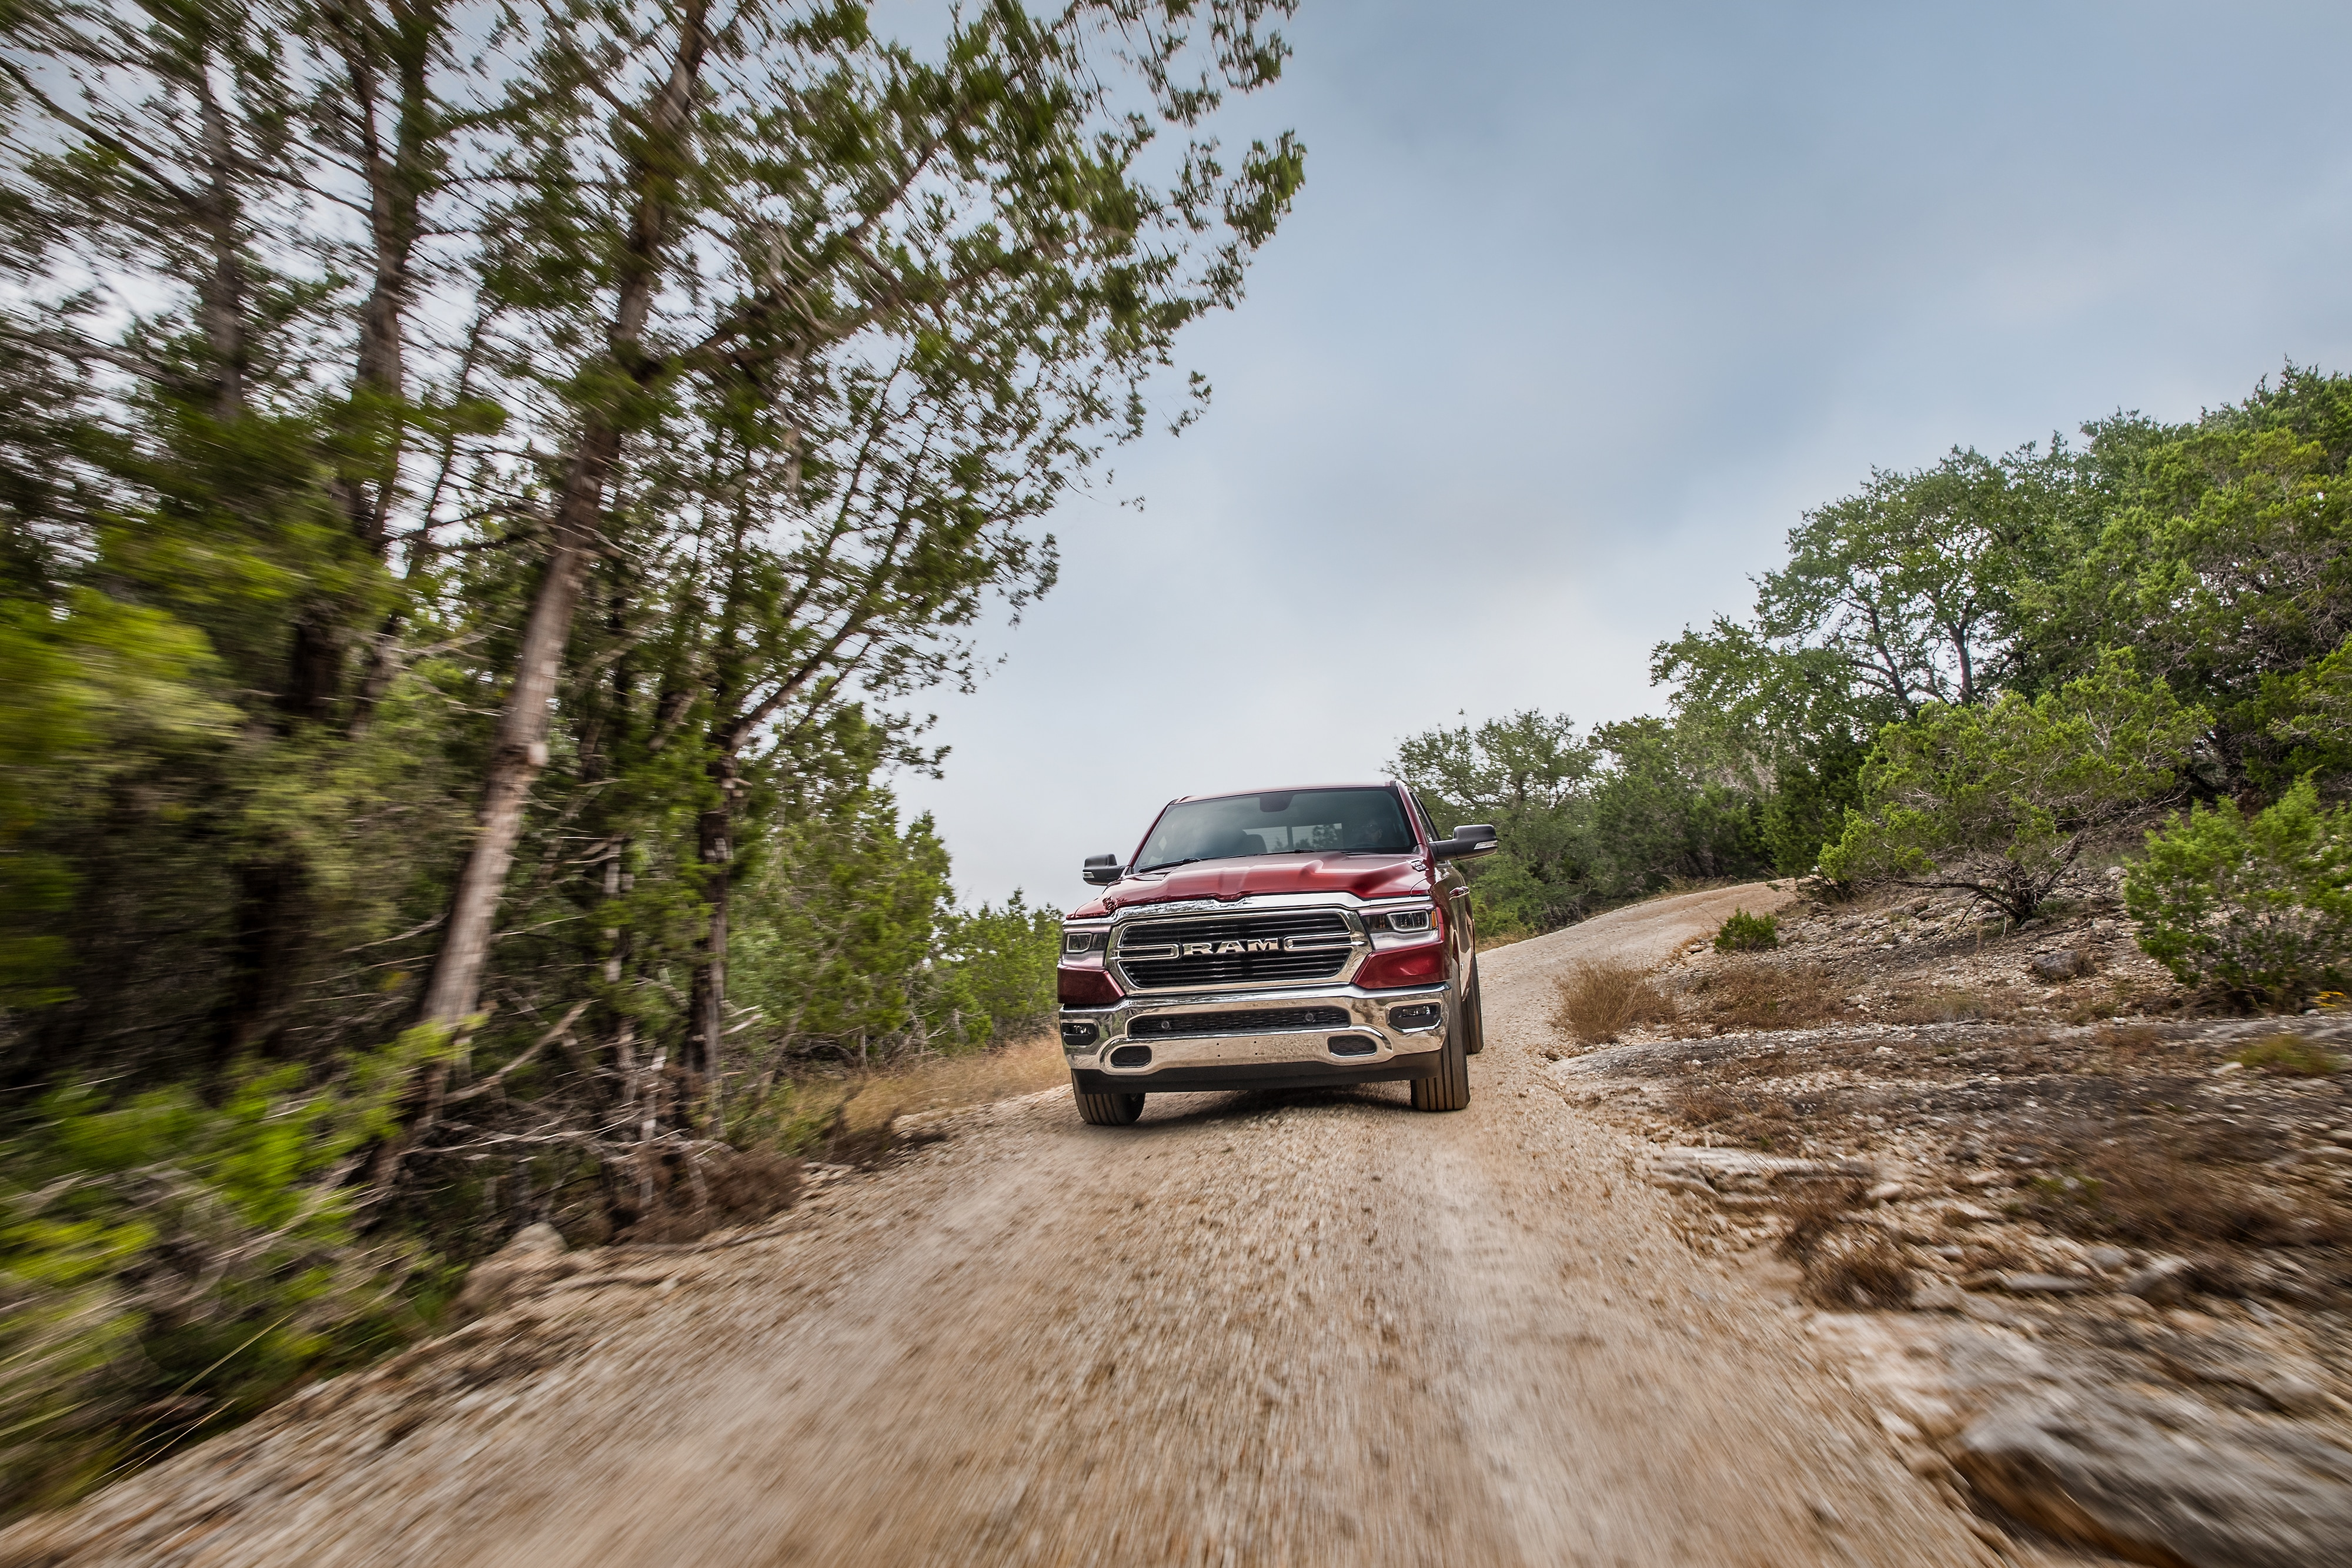 A New Ram 1500 Can Help You Create Your Ideal Adventure and